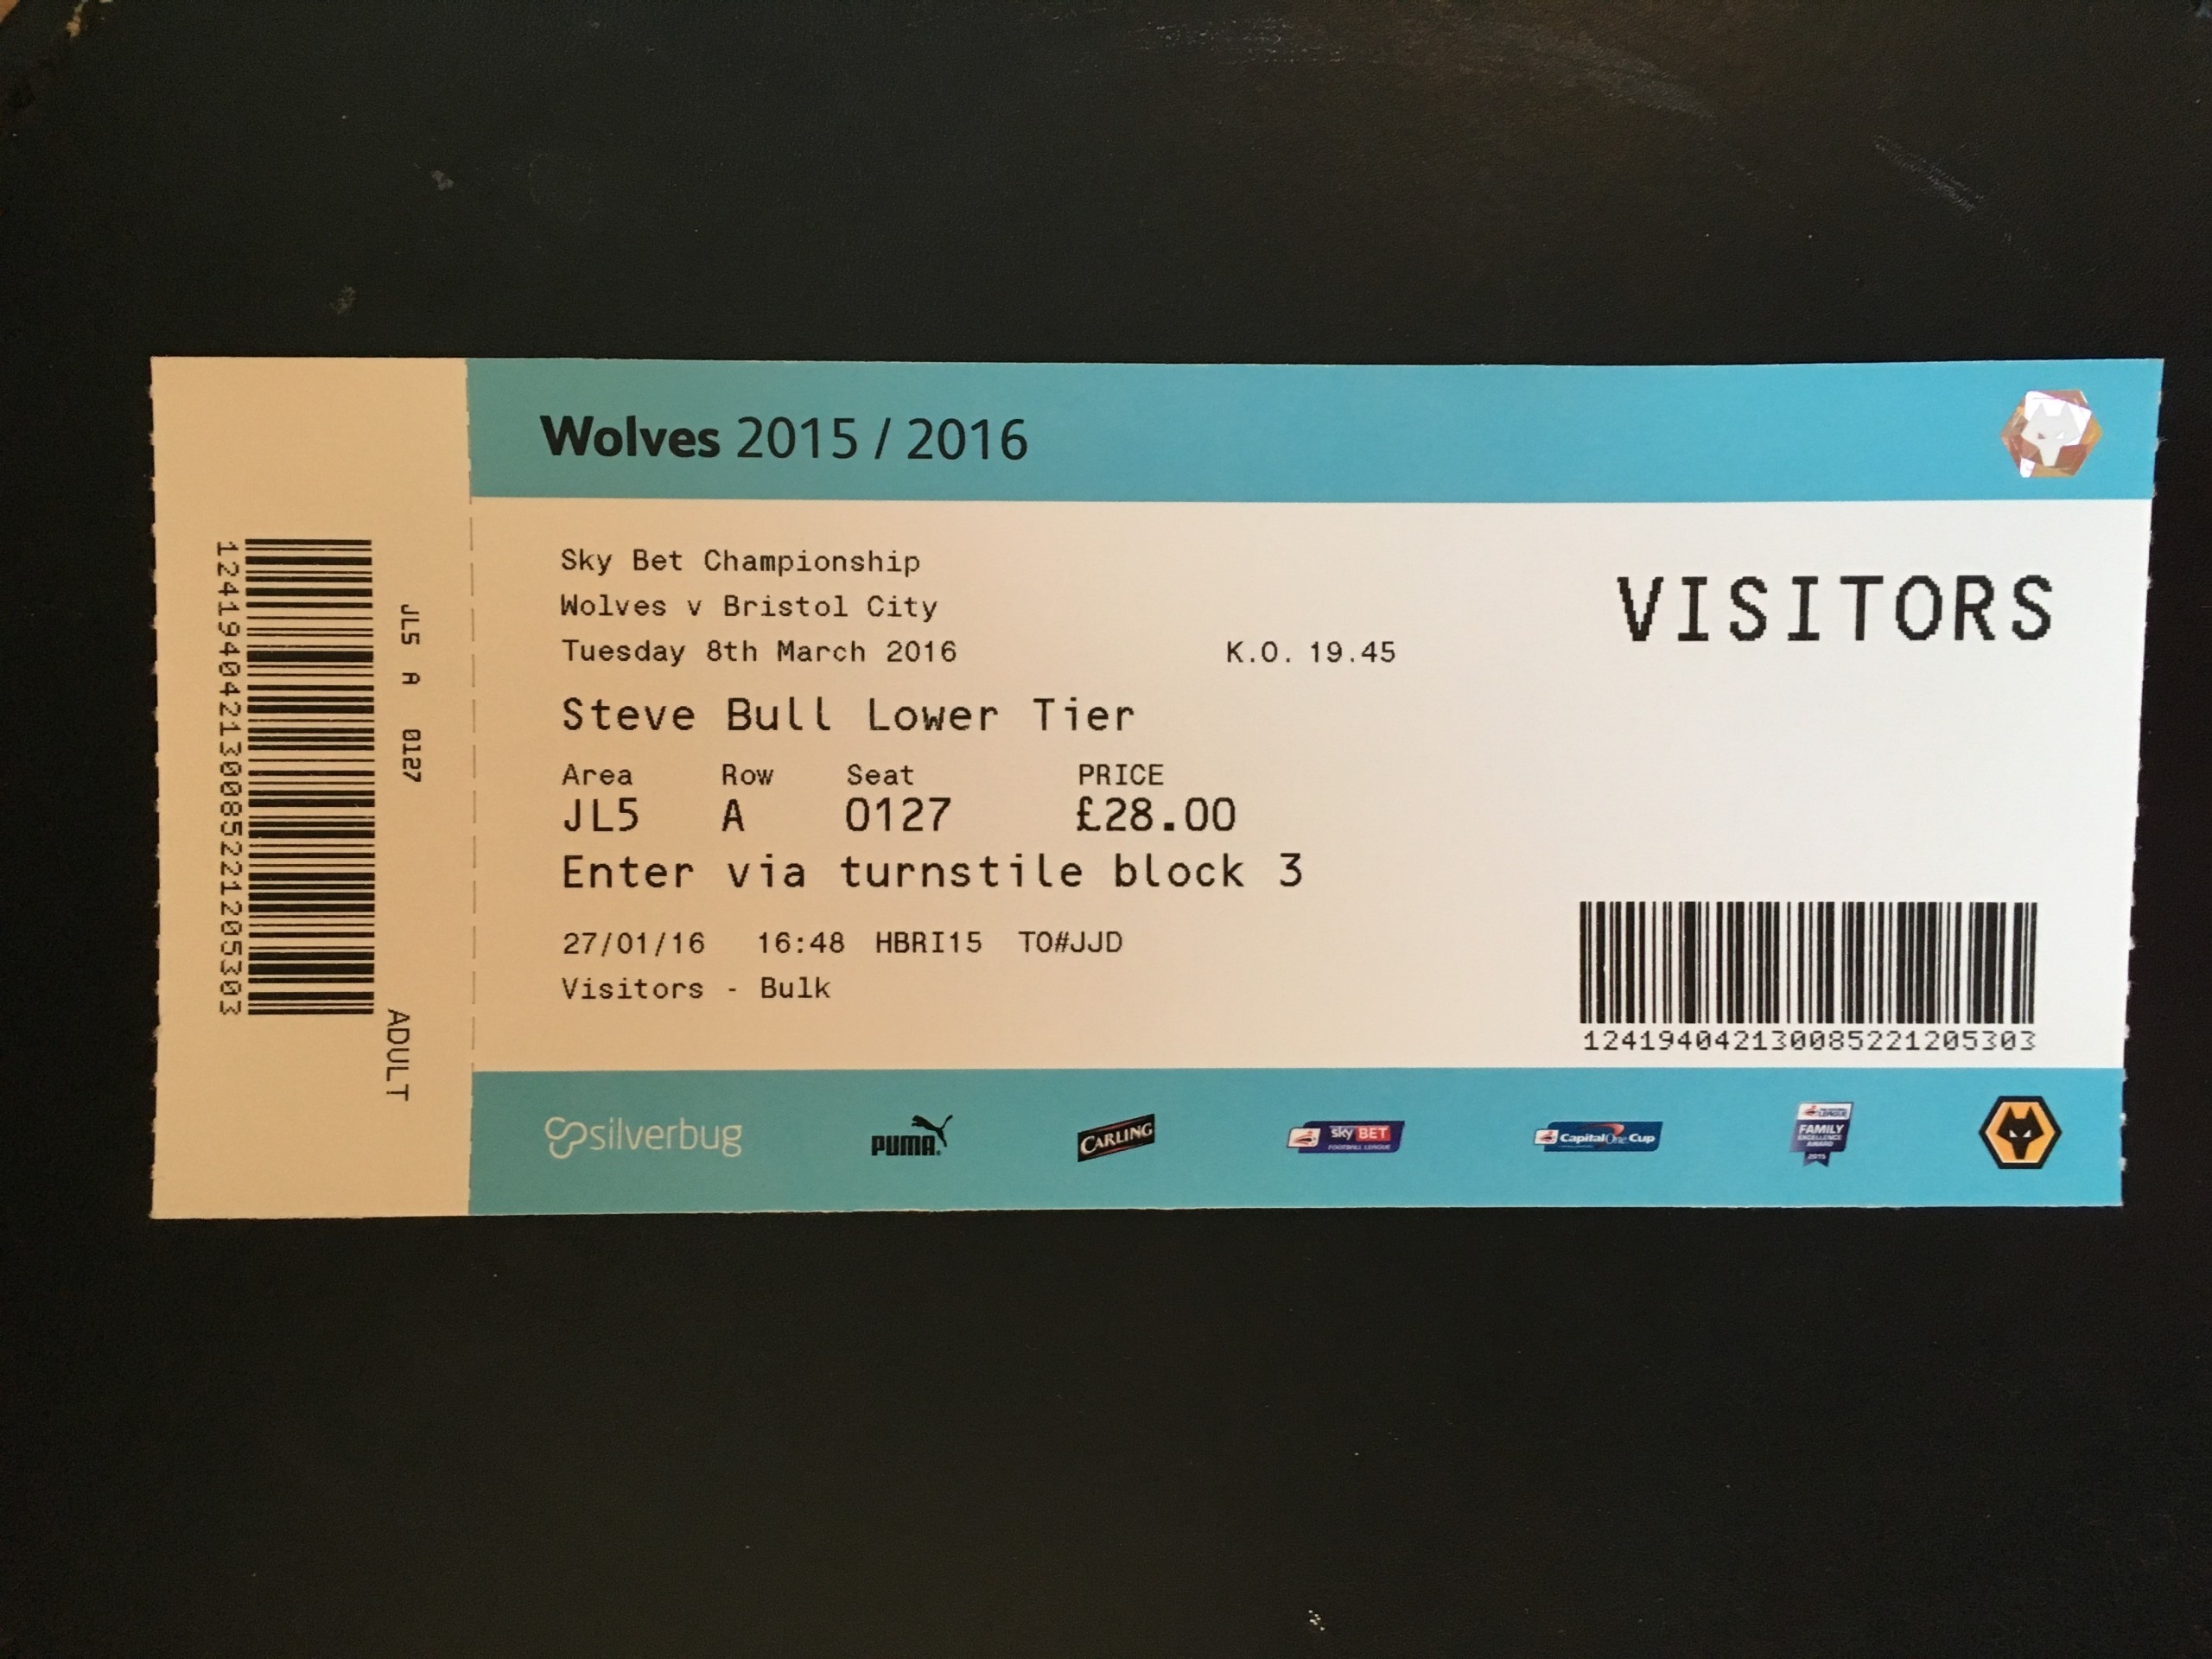 Wolves v Bristol City 08-03-2016 Ticket